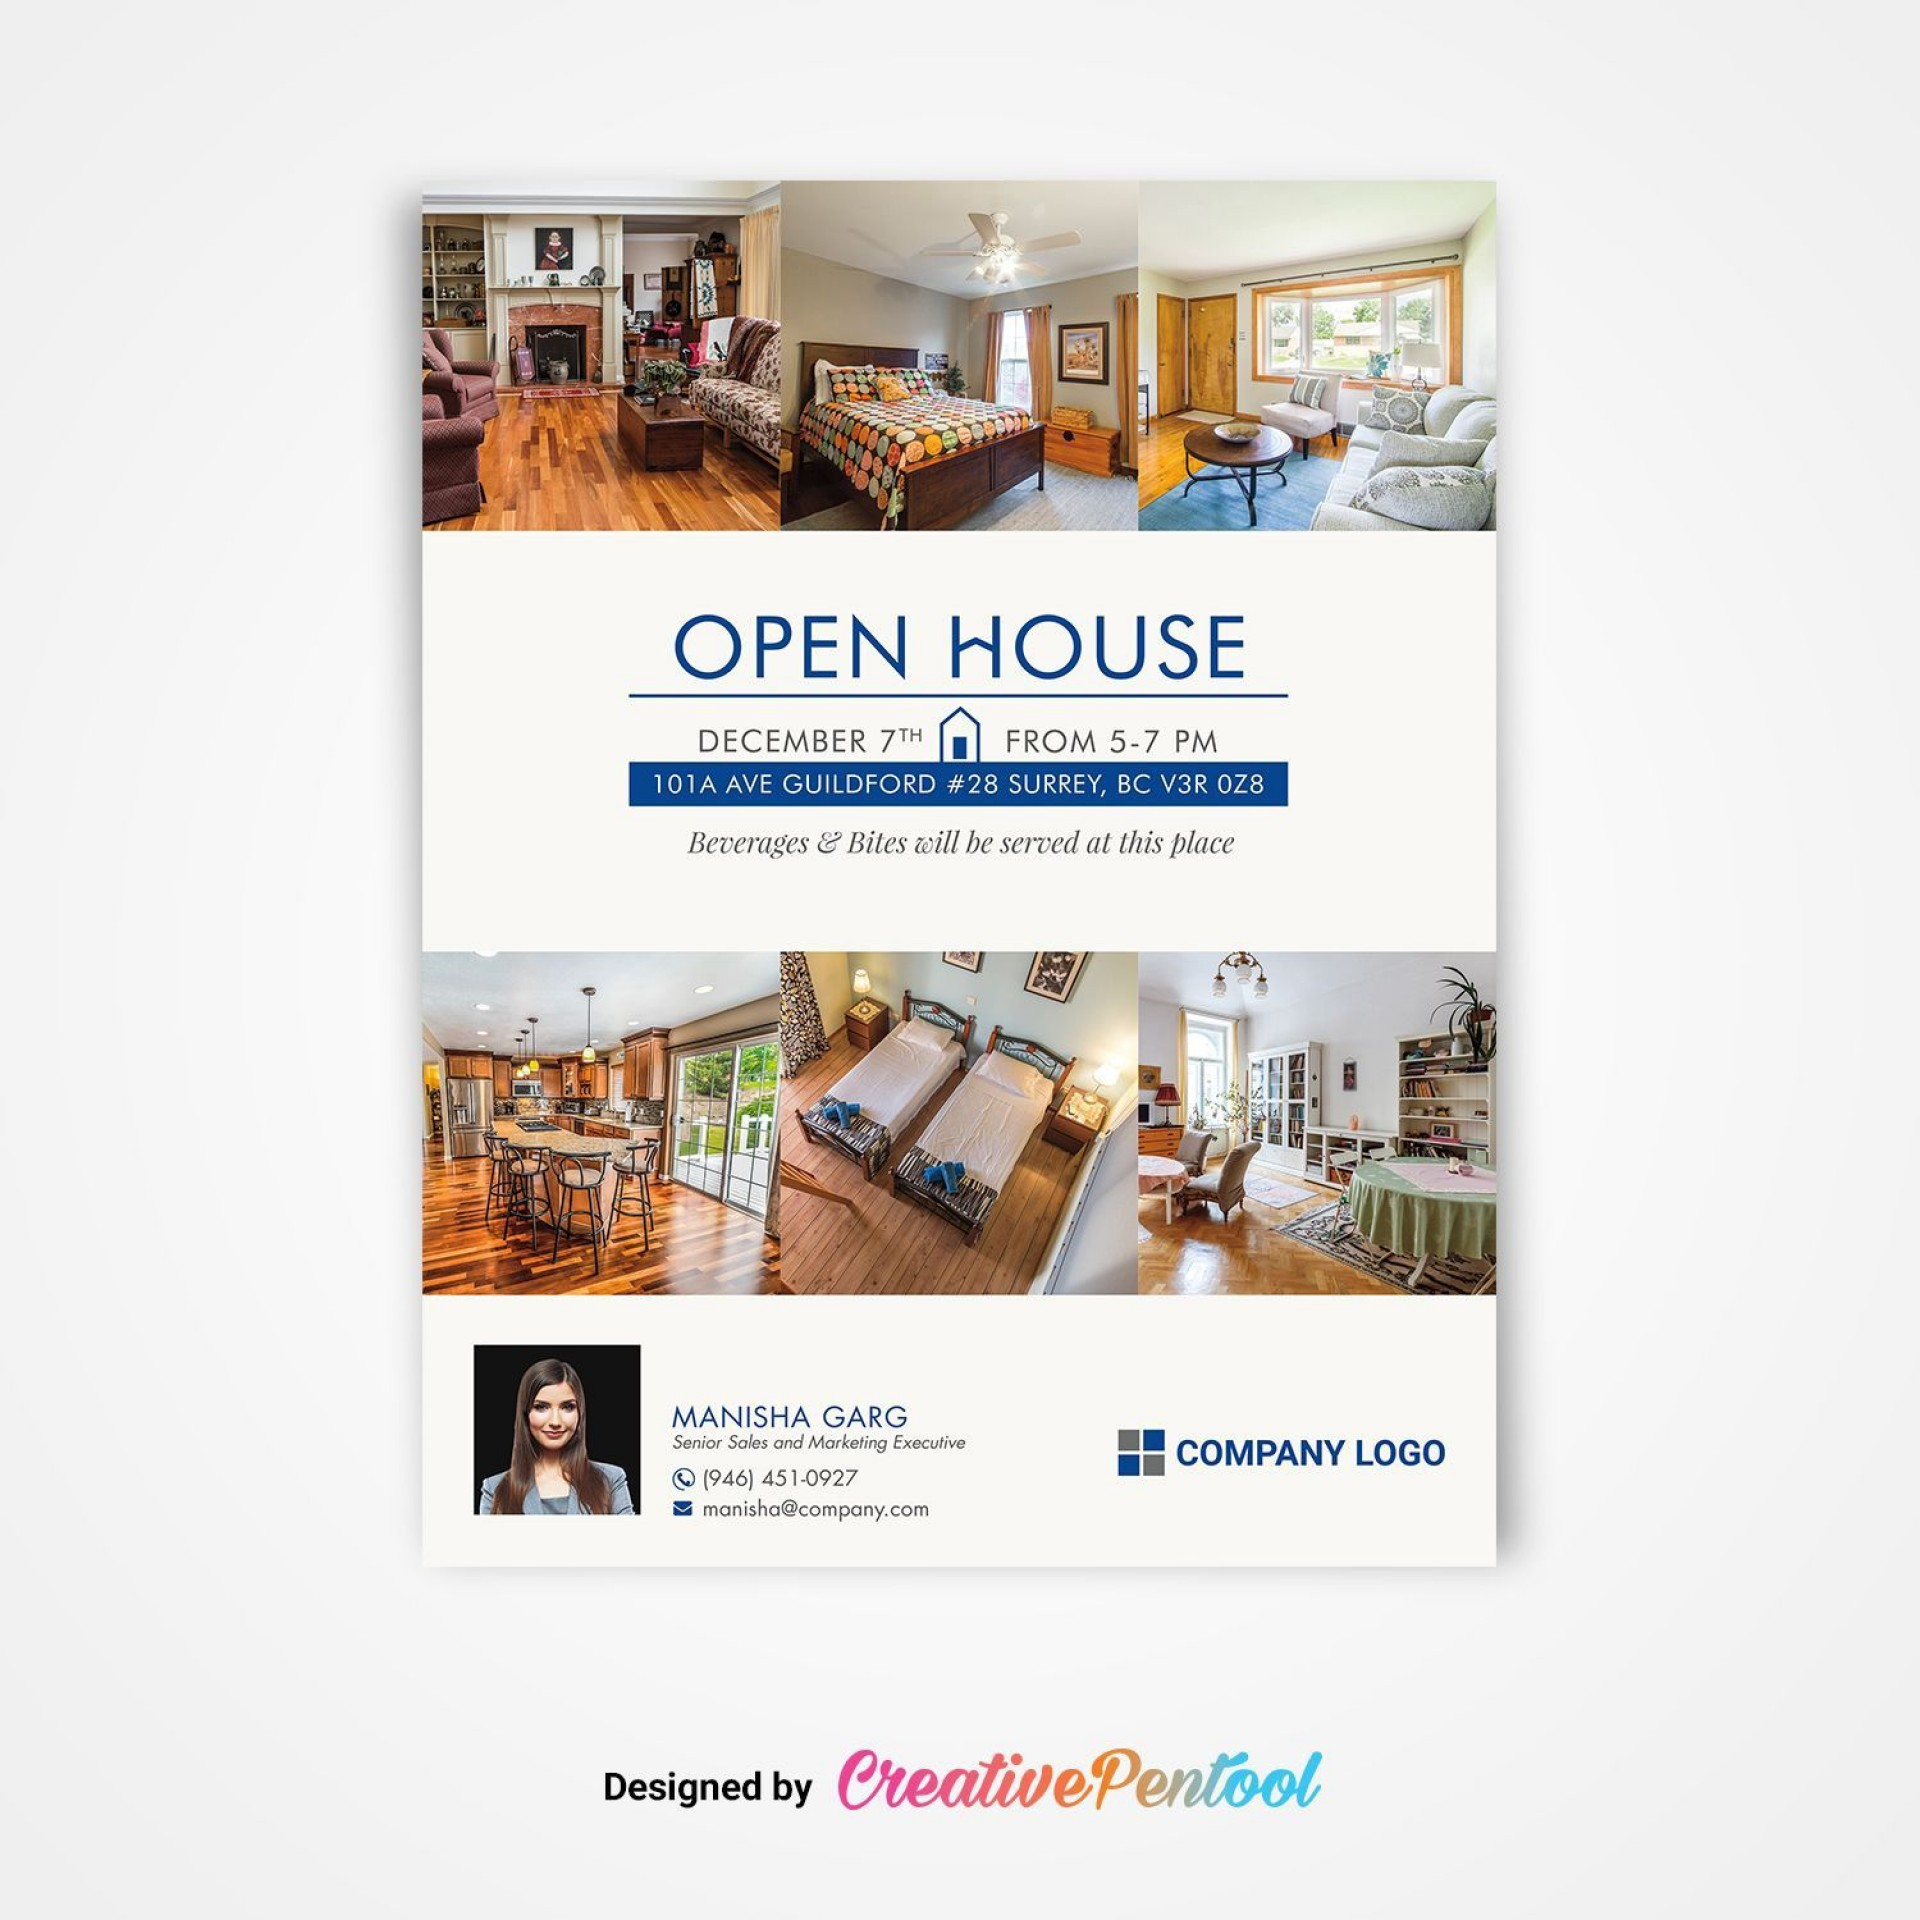 003 Magnificent Free Open House Flyer Template High Definition  Microsoft Word1920